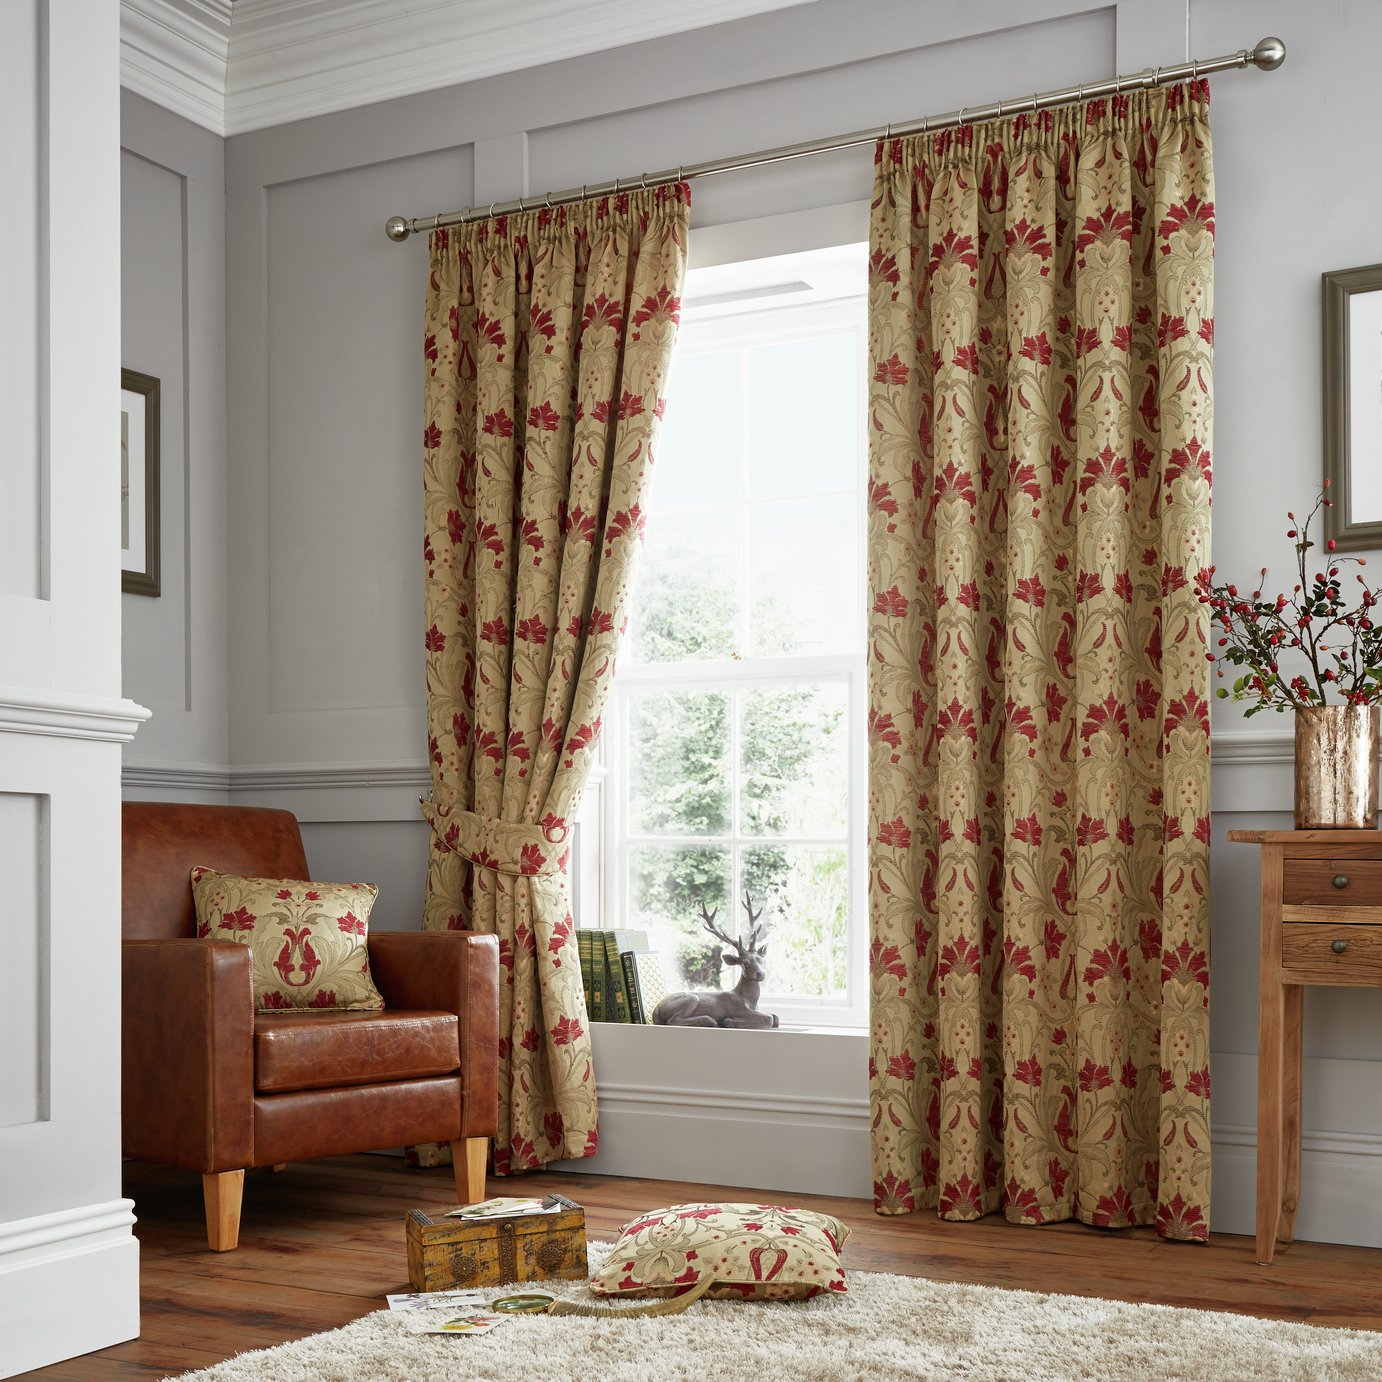 Image of Curtina Burford Curtains - 168x137cm - Red and Gold